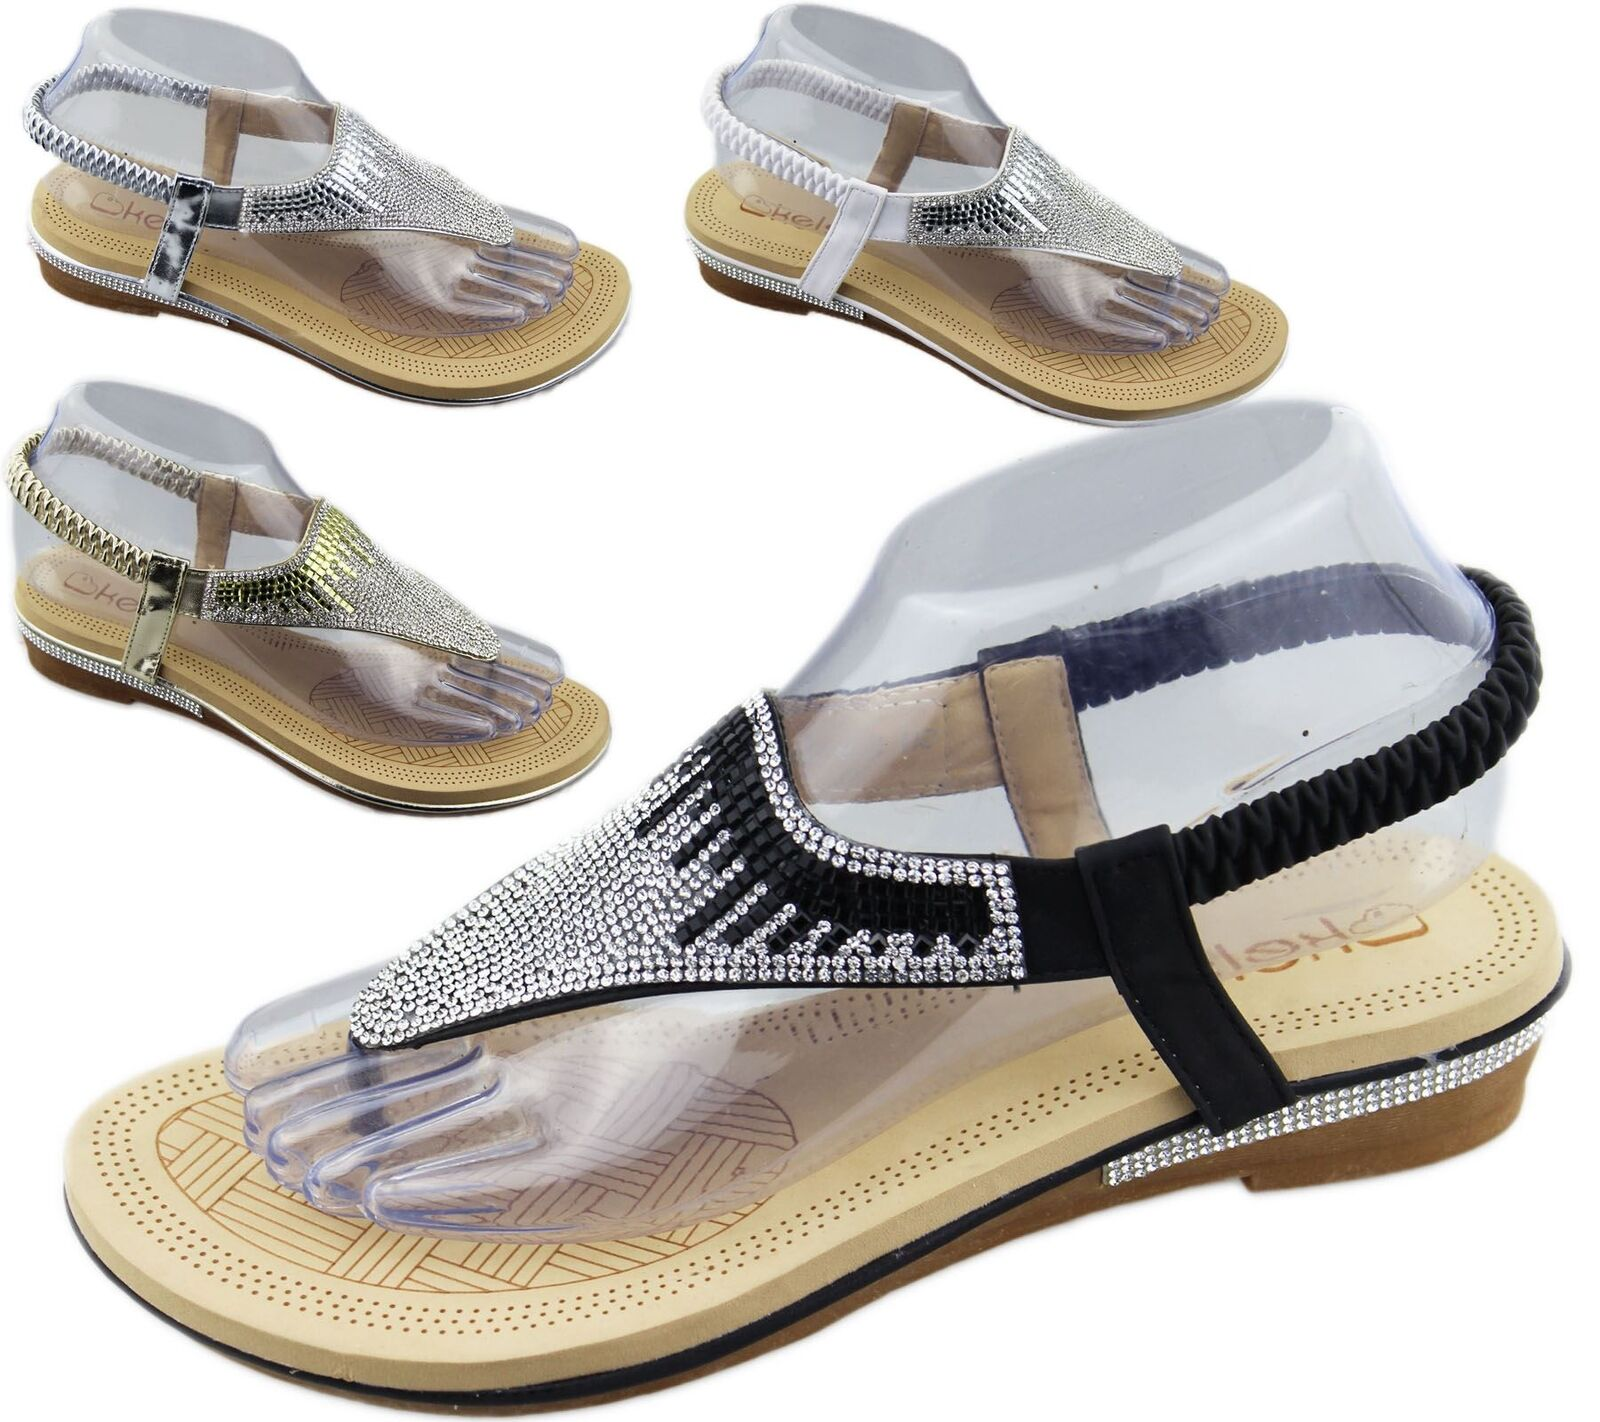 Mujer's Ladies Espadrilles Ankle strap strap Ankle Sequin Glitter Sandals Talla 3-8 a5d138